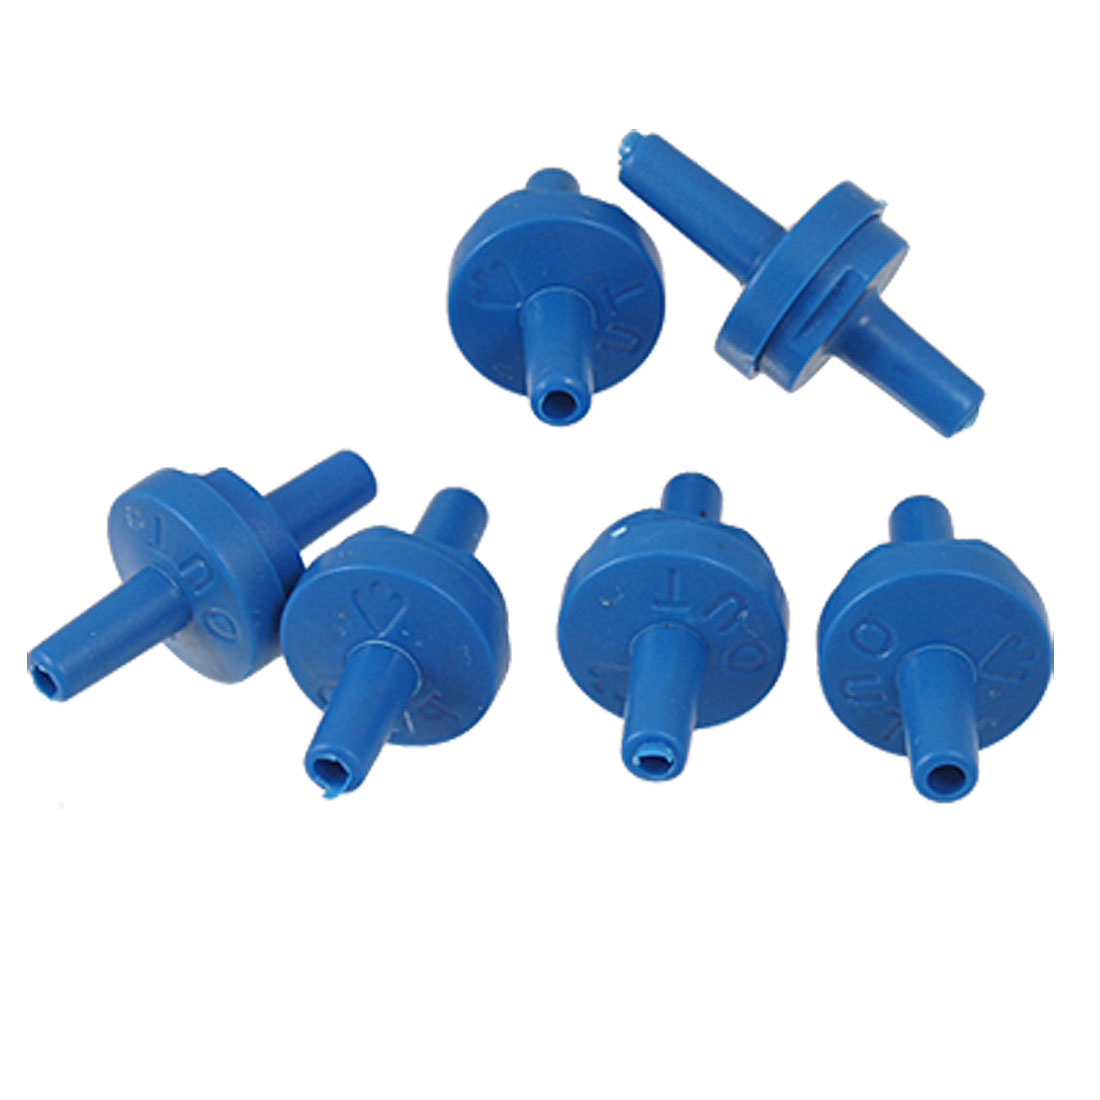 Aquarium Tank 6 Pcs Plastic Air Pump Blue Check Valves